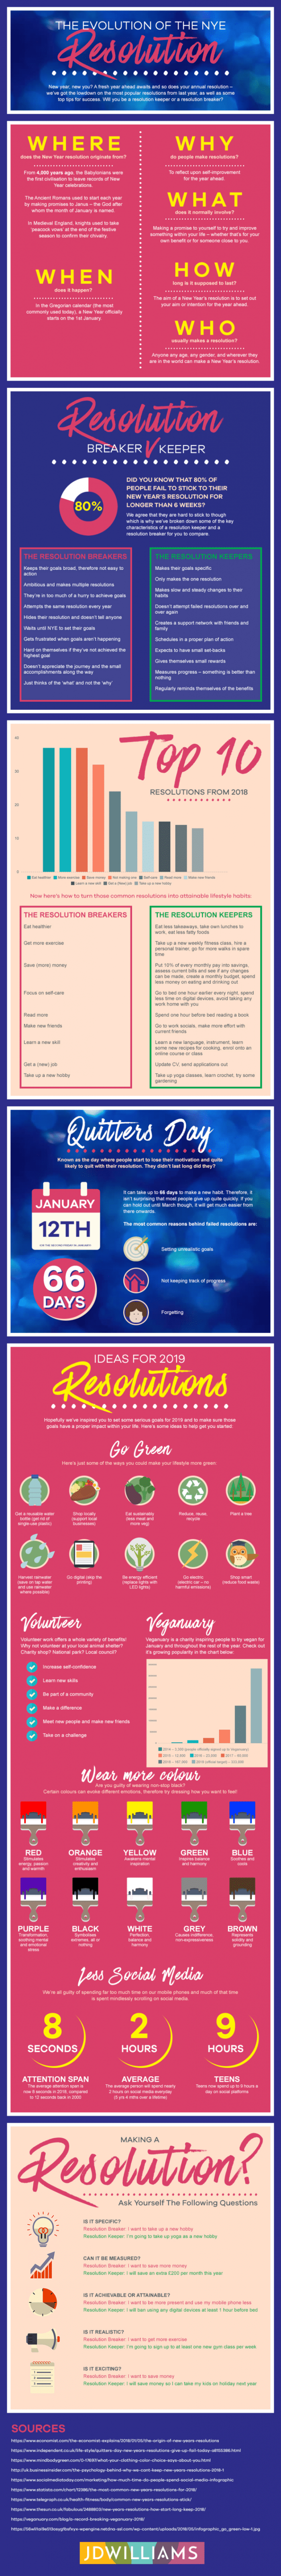 Evolution of NYE Resolutions